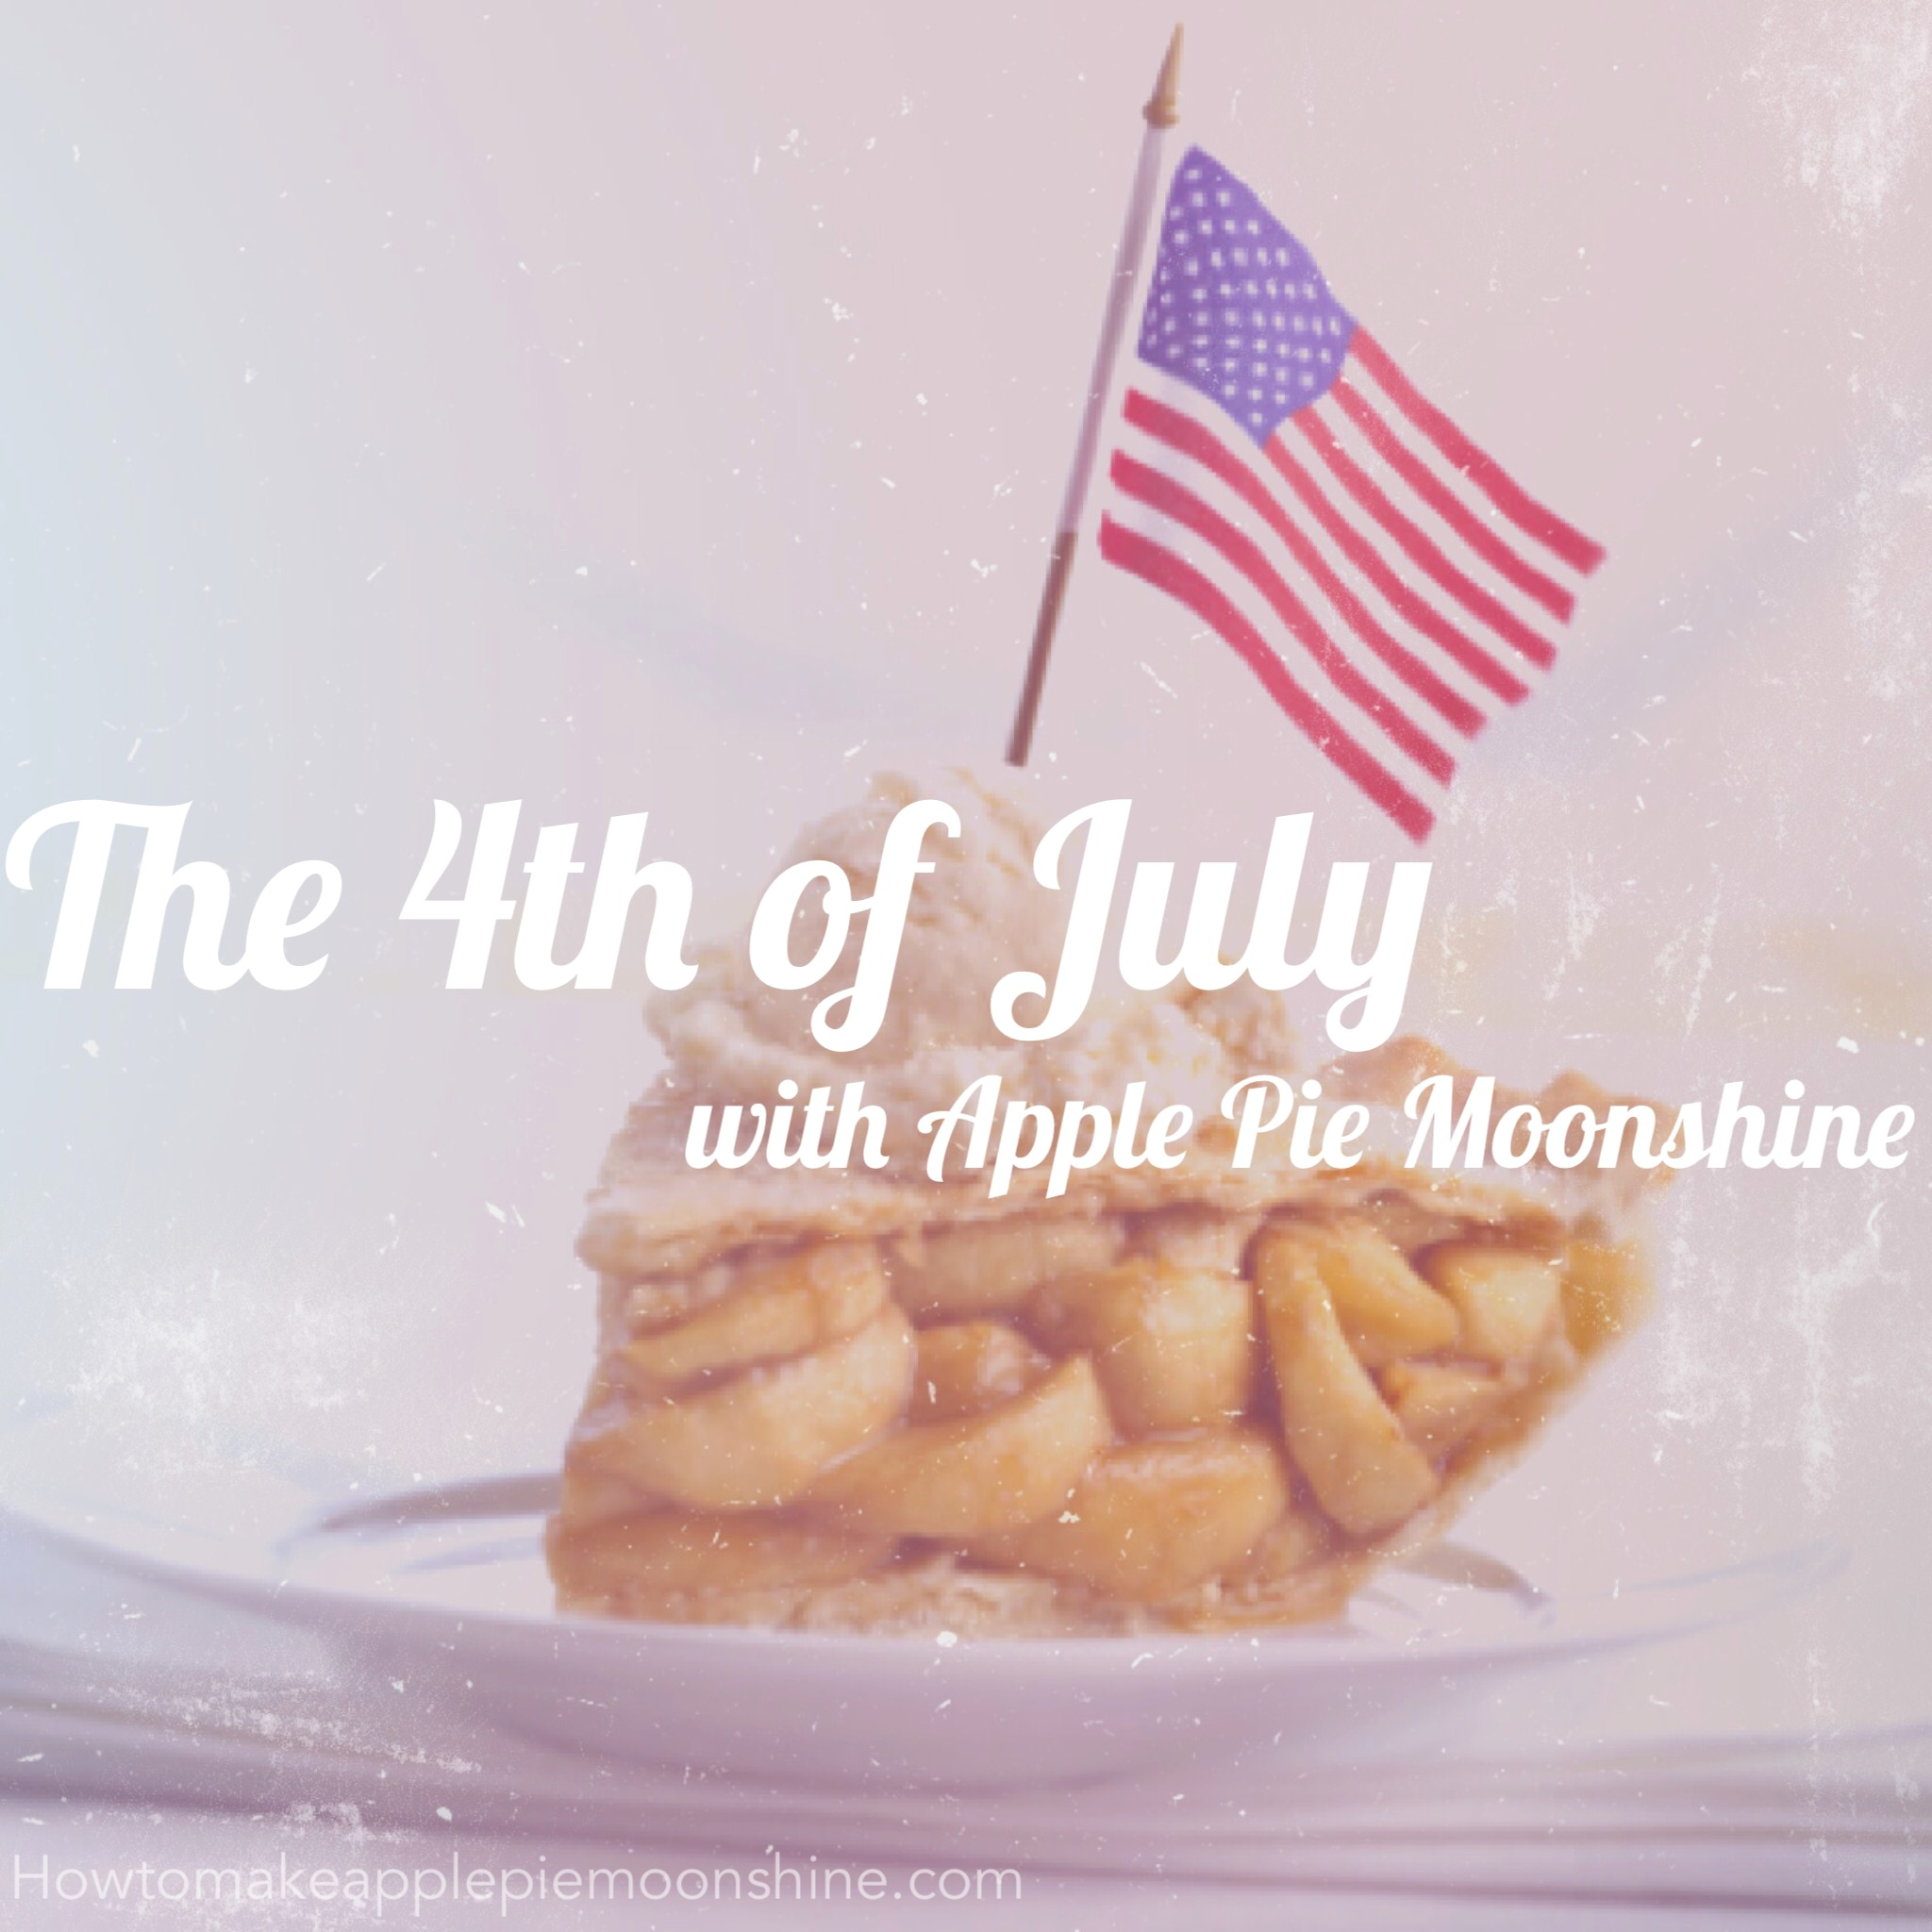 4th of july moonshine recipes how to make apple pie moonshine 4th of july moonshine recipes forumfinder Choice Image